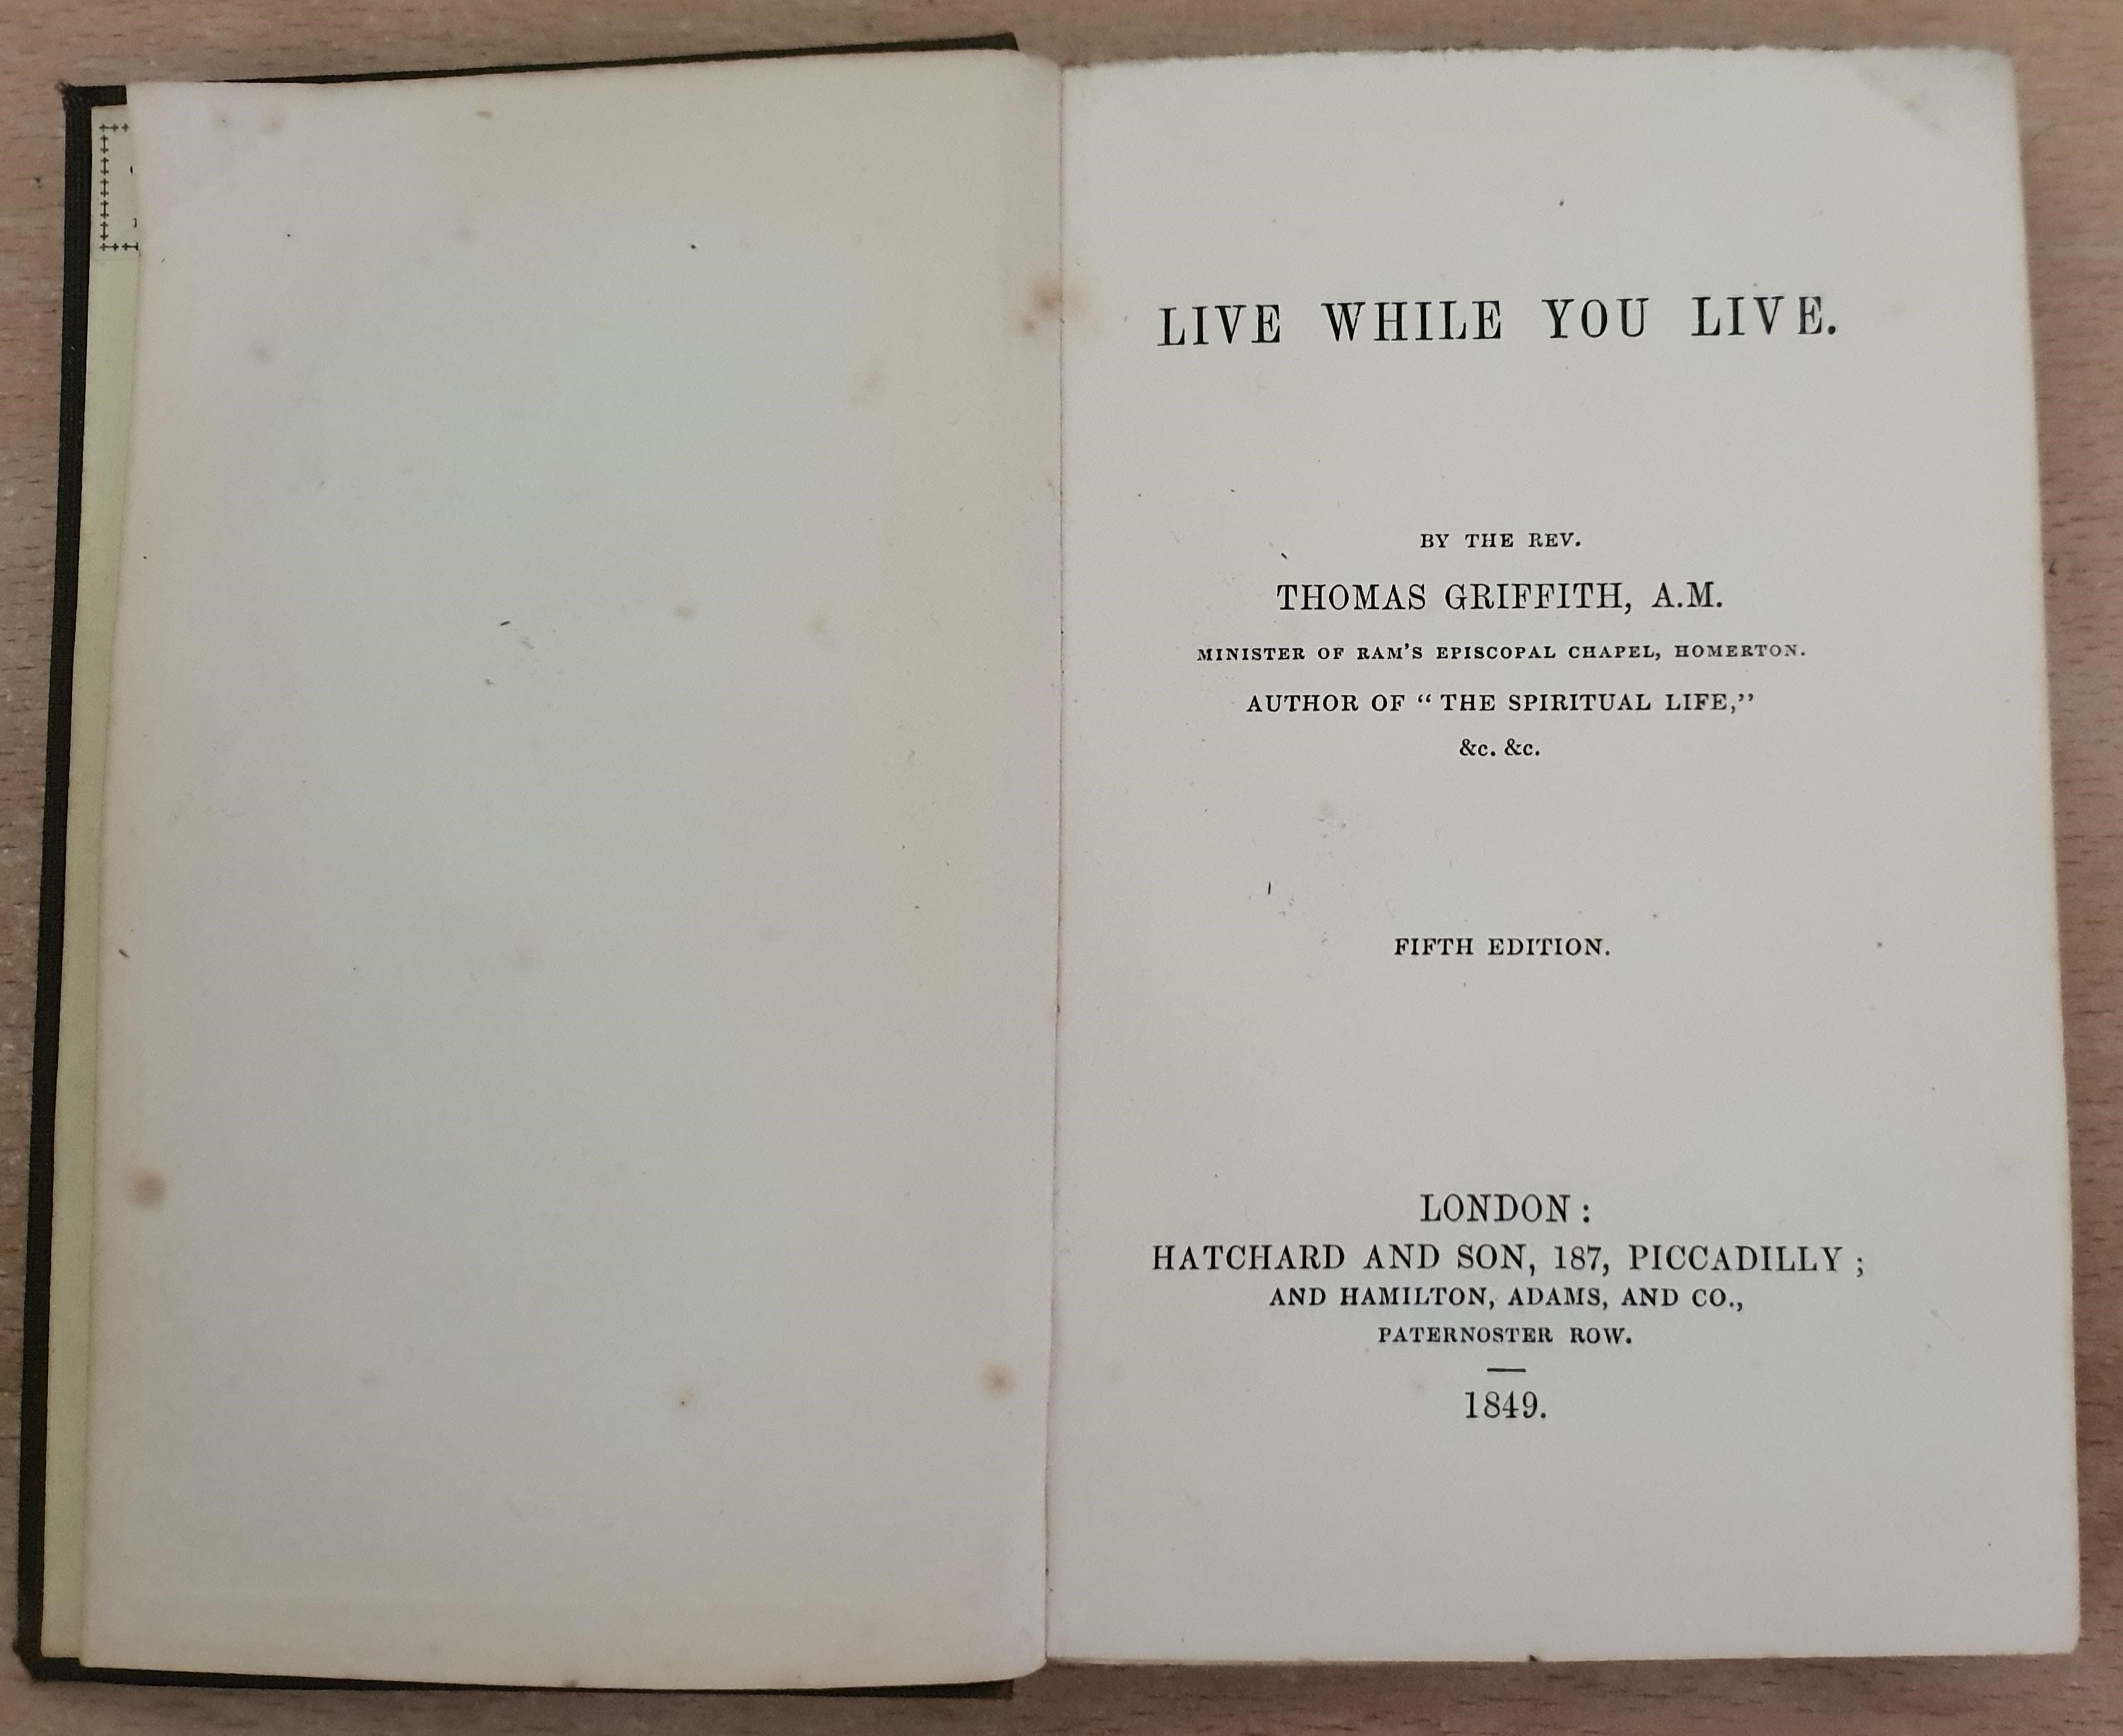 Image for Live While You Live. By The Rev. Thomas Griffith, A.M. Minister of Ram's Episcopal Chapel, Homerton.